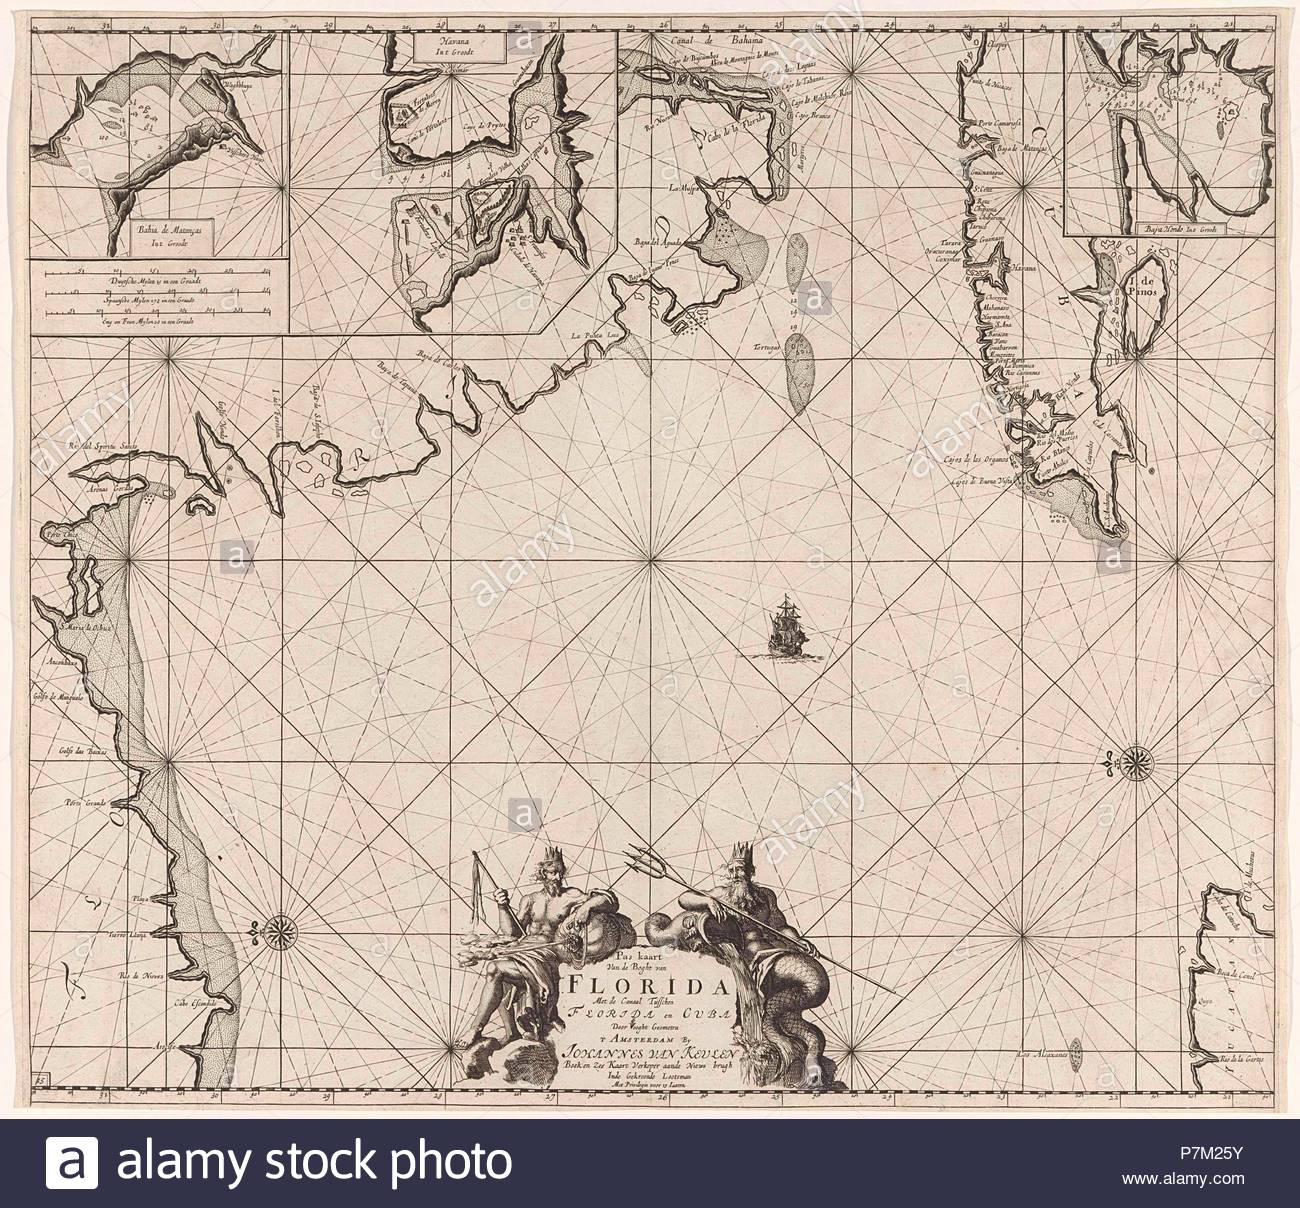 Sea chart of part of the Gulf of Mexico, with the coast of Florida, Jan Luyken, Claes Jansz Voogt, Johannes van Keulen (I), 1684 - 1799. - Stock Image